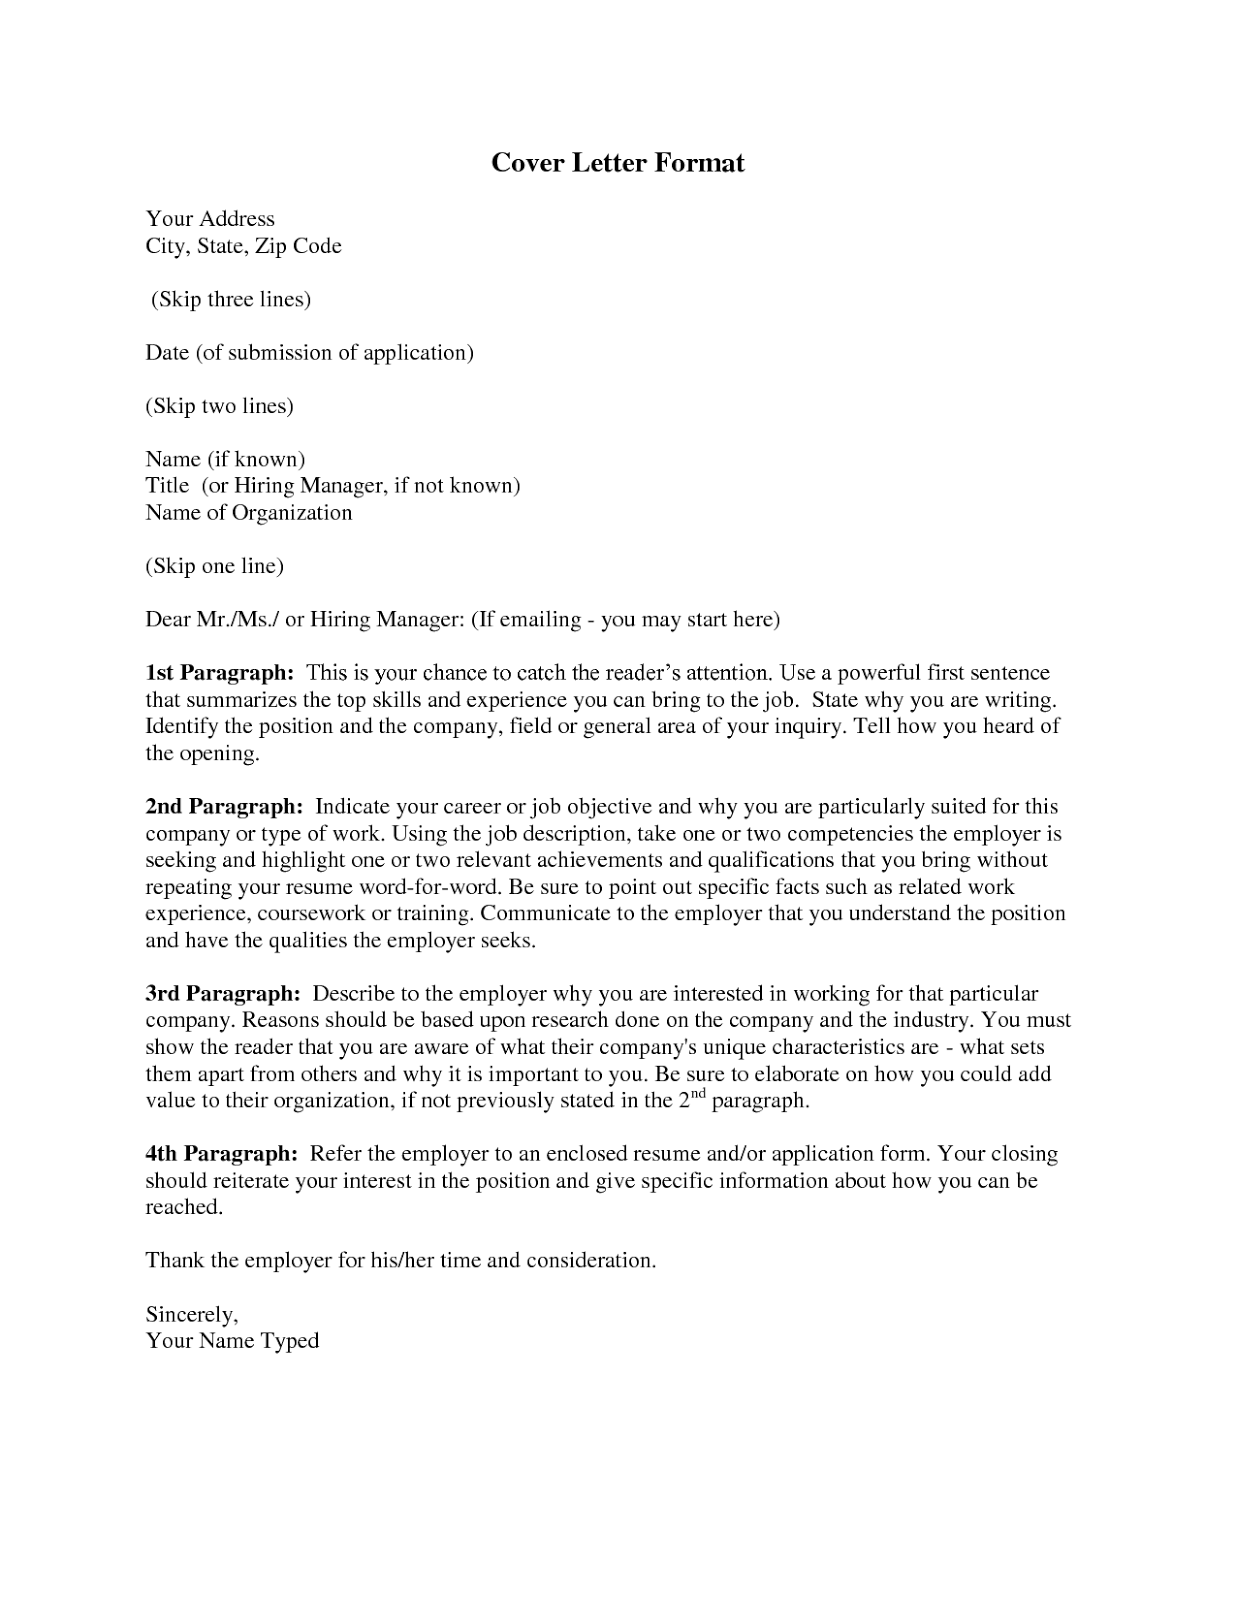 Curriculum Vitae And Cover Lettercover Letter Format Cover Letter